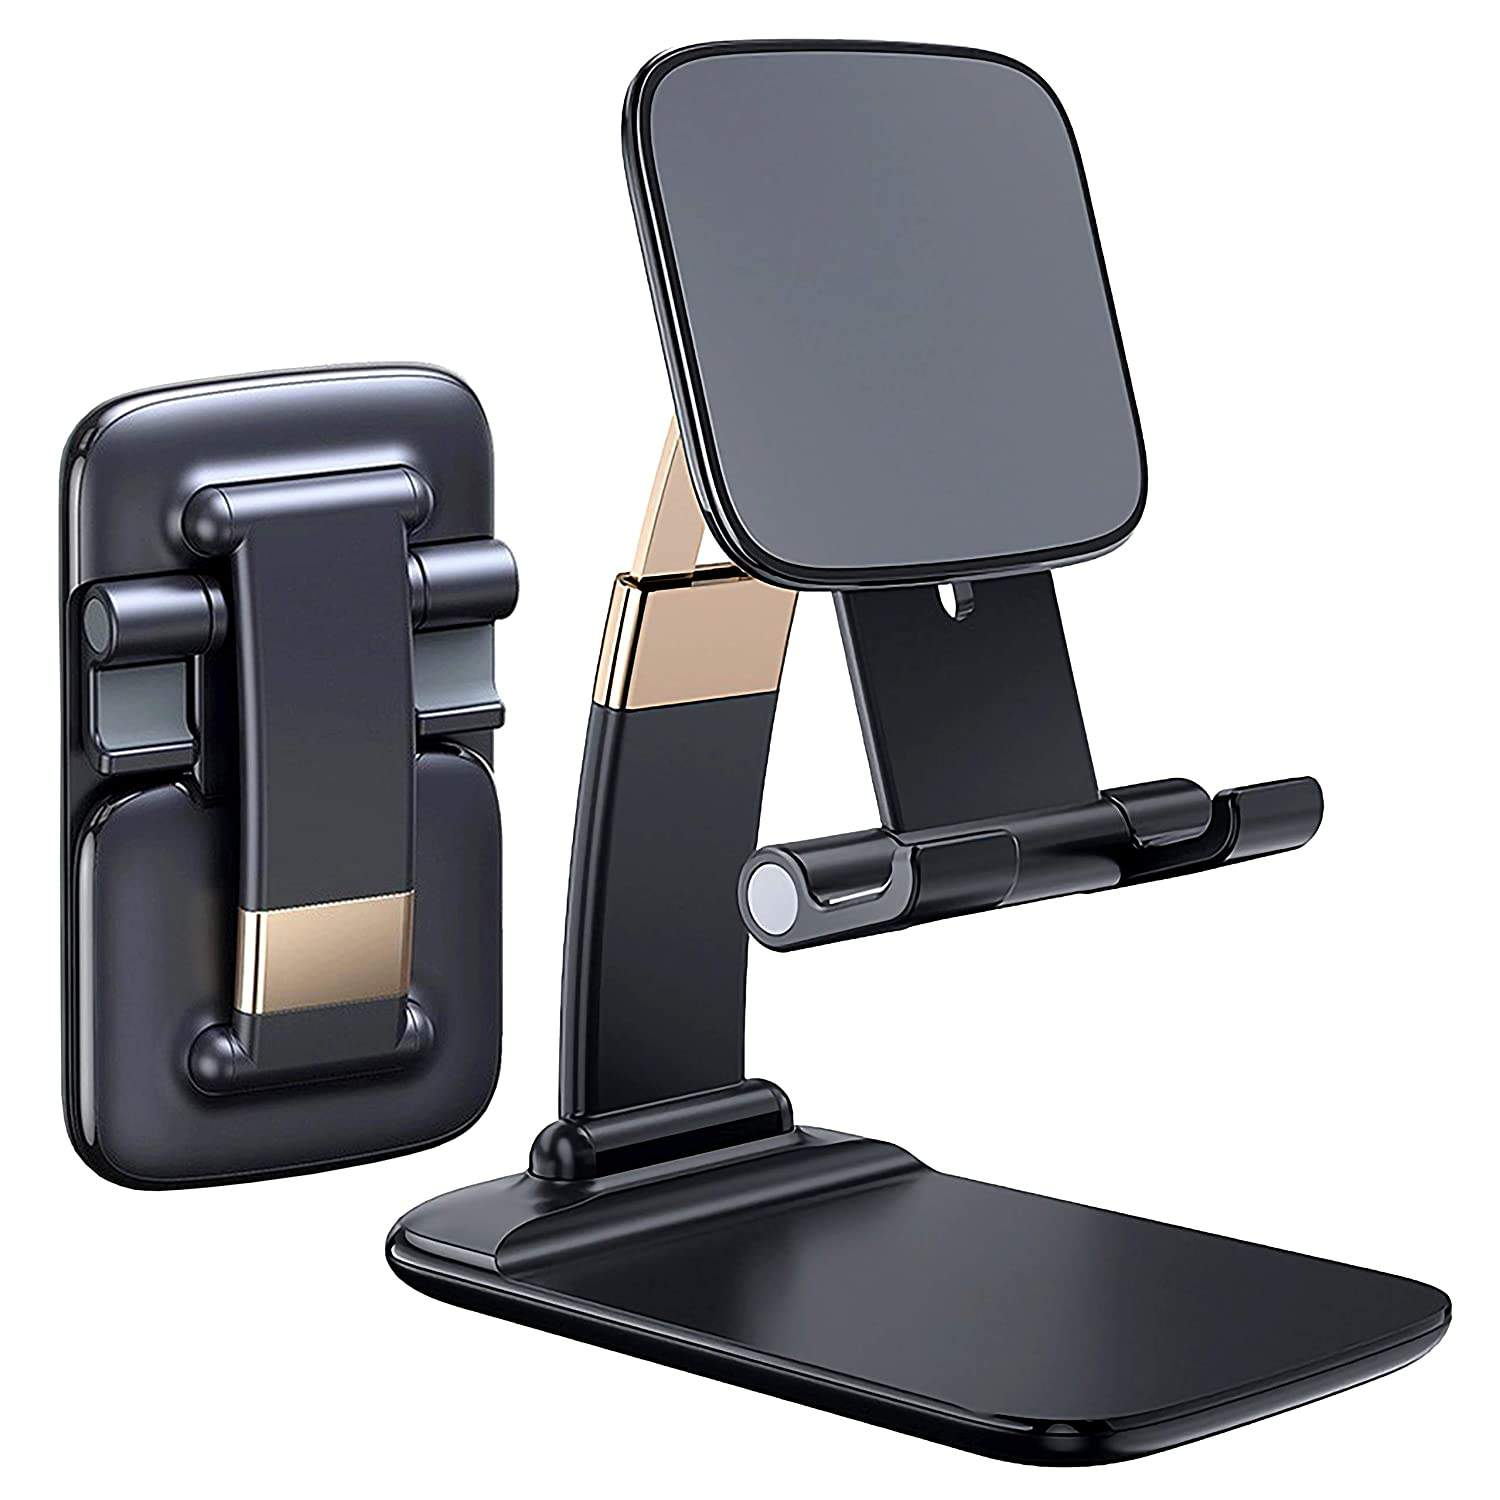 Mobile Phone Holder Adjustable Stand for Table and Mount Universal Desktop Mobile Stand